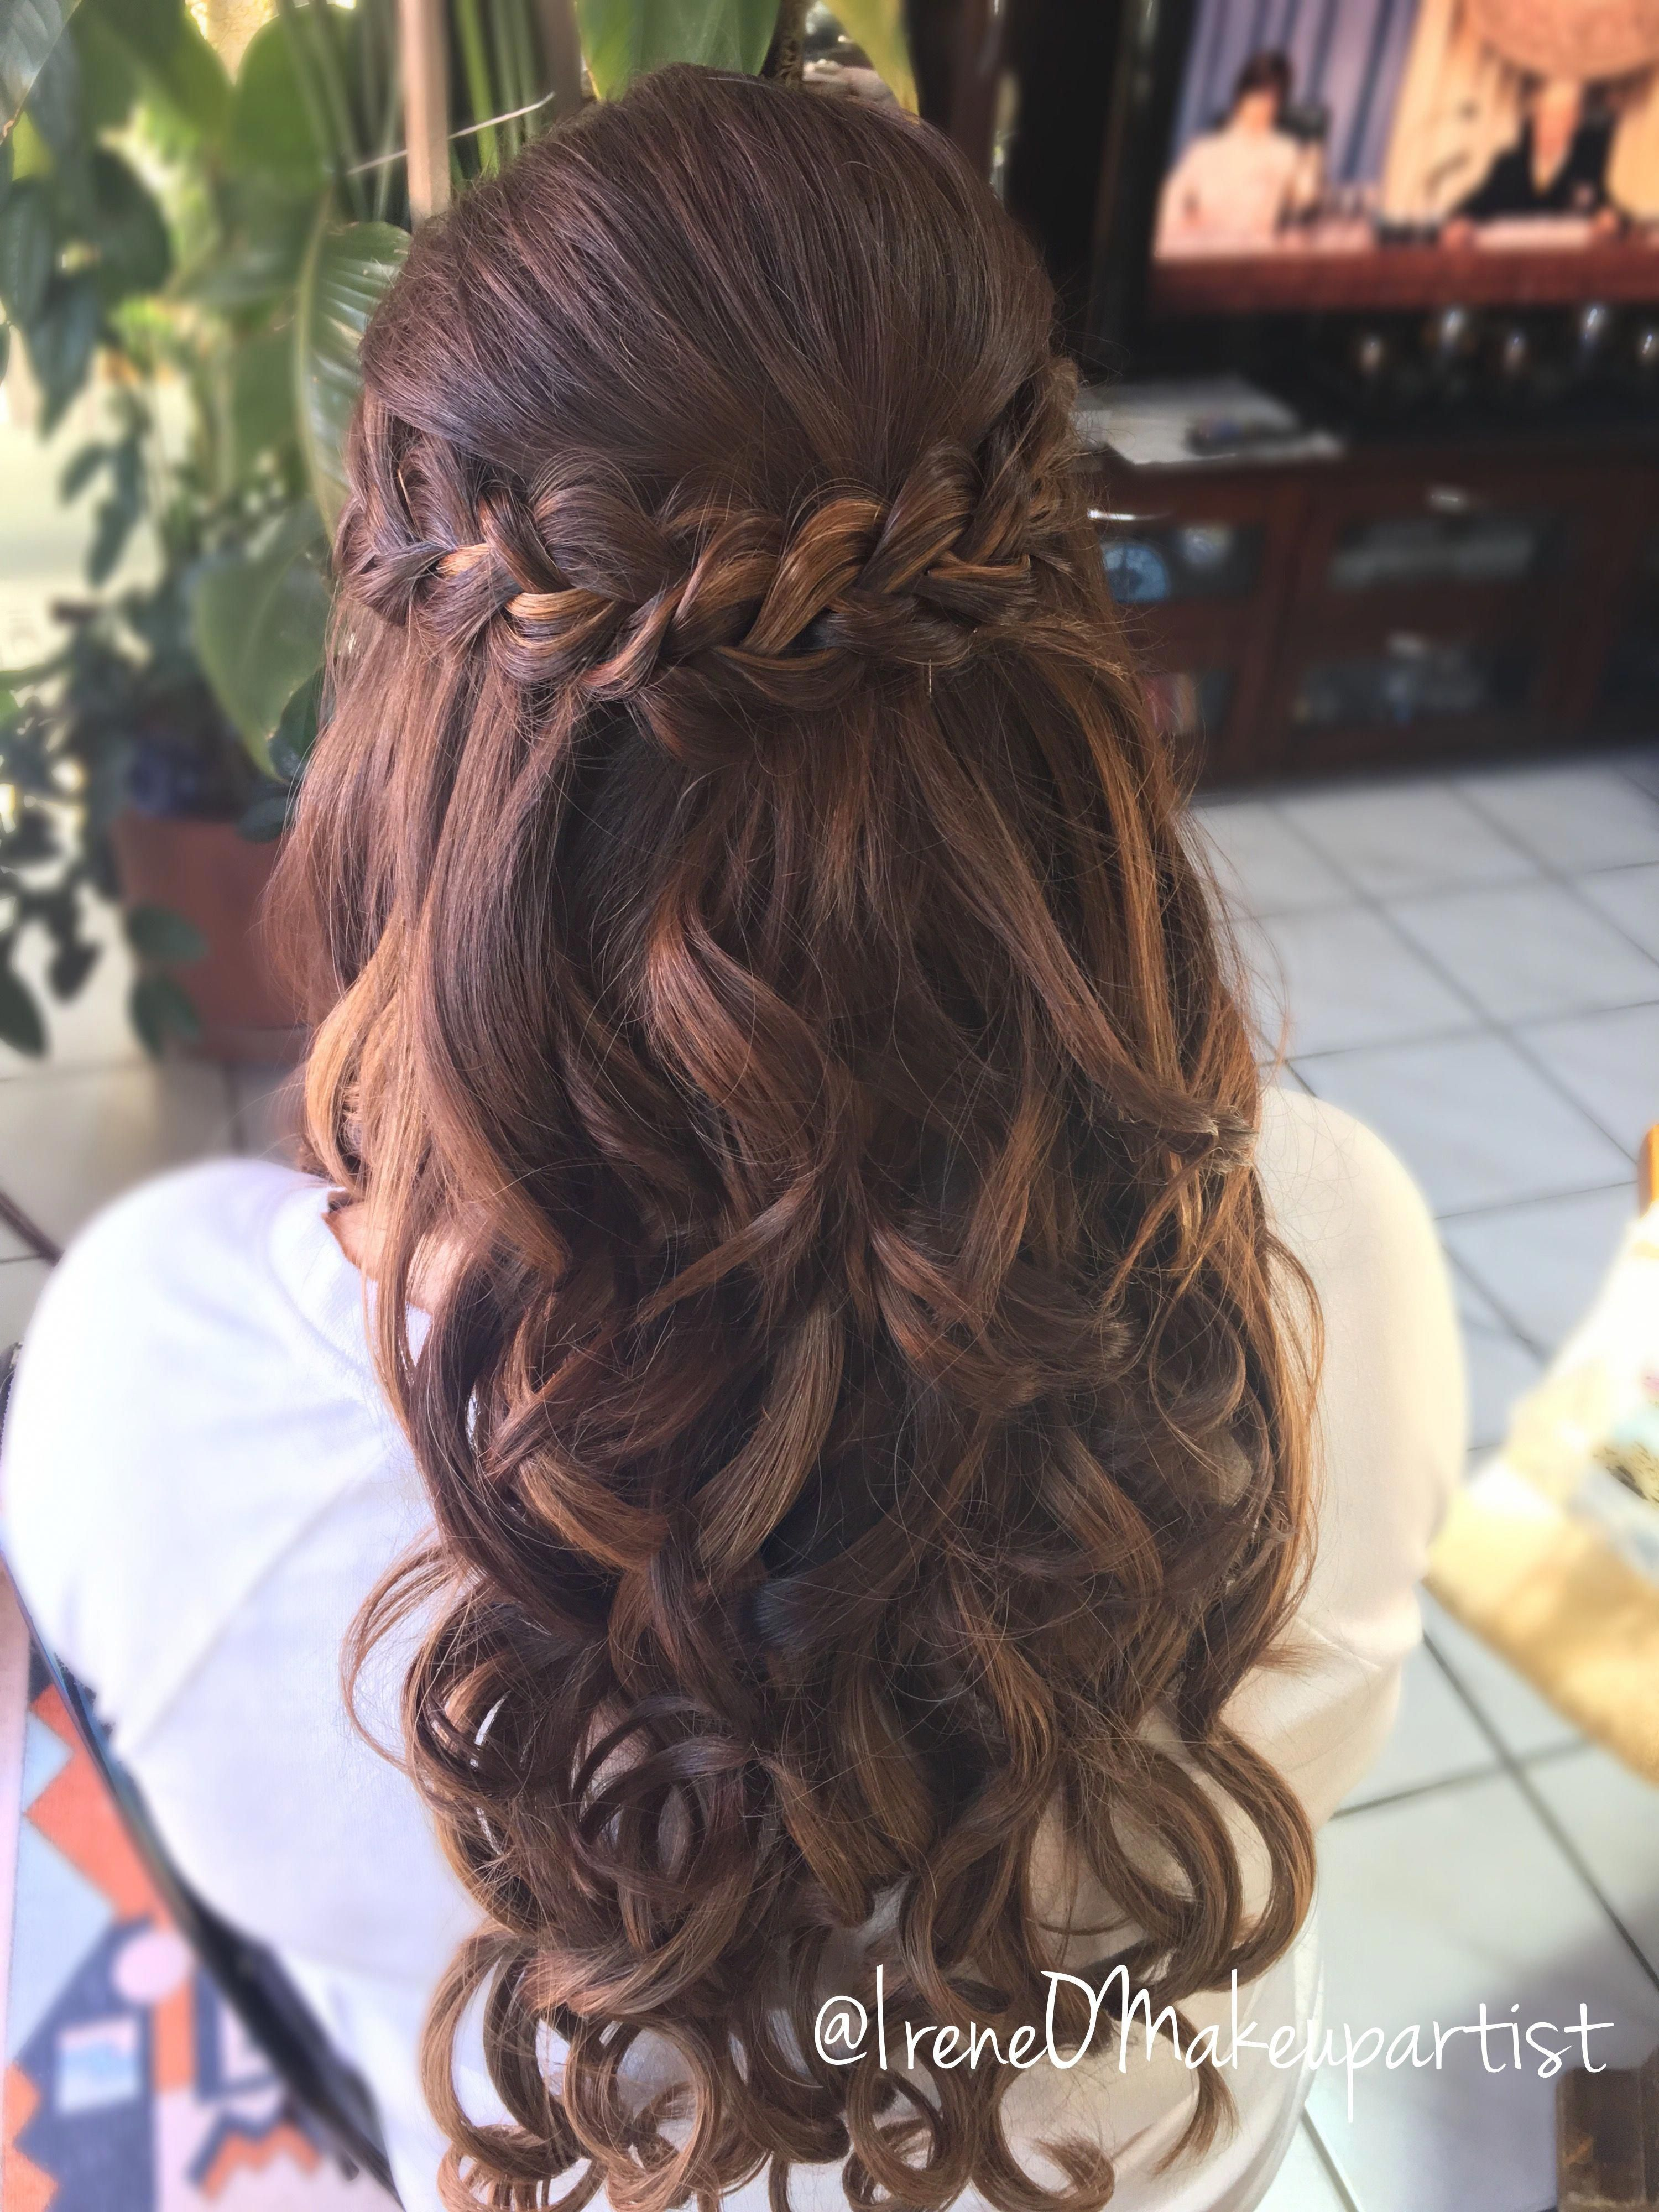 half up style by irene o'brien. #braids and #curls